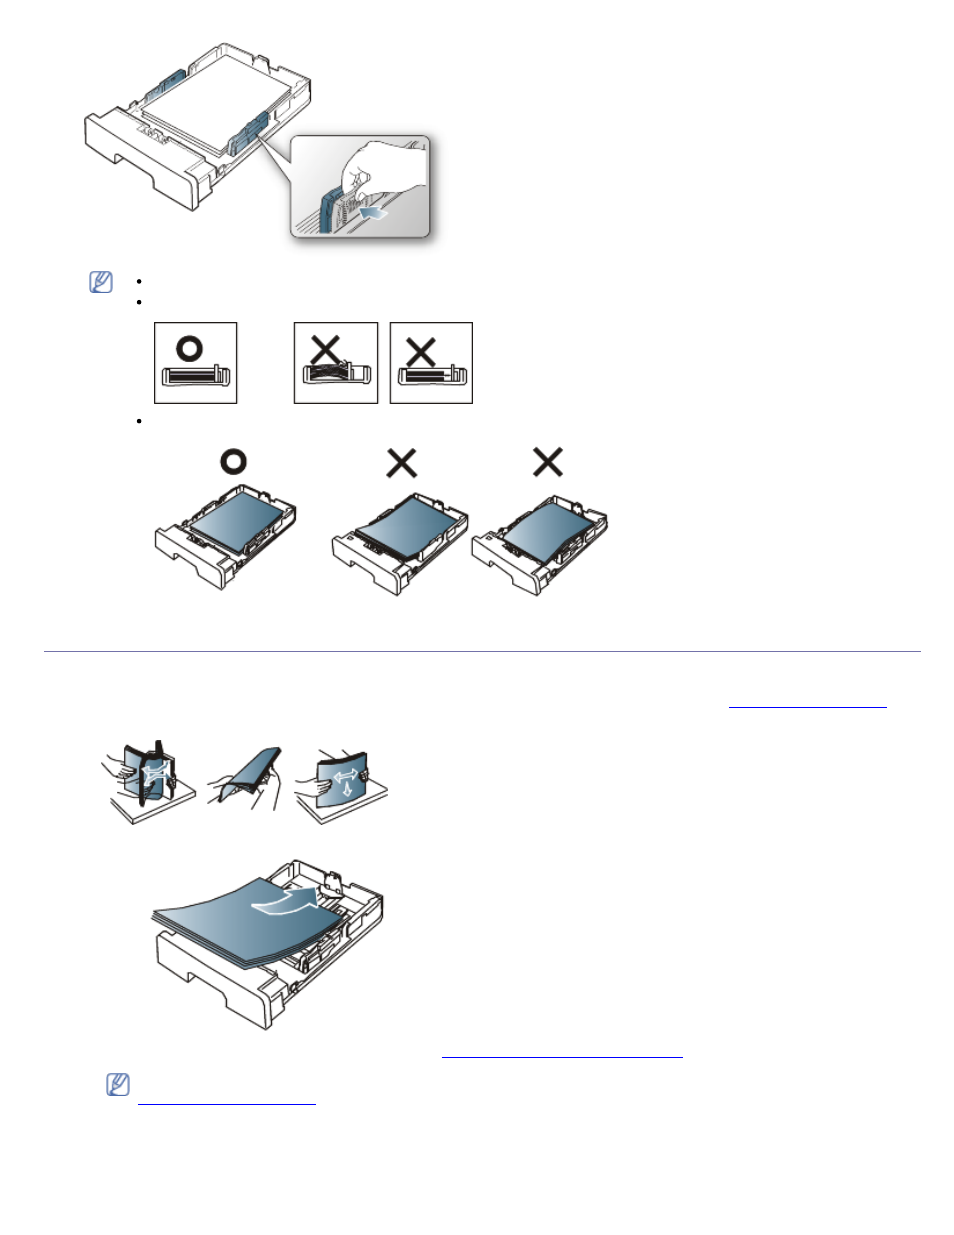 Loading paper in the tray, Tray 1, Manual tray   Dell 1130 Laser Mono Printer  User Manual   Page 39 / 103